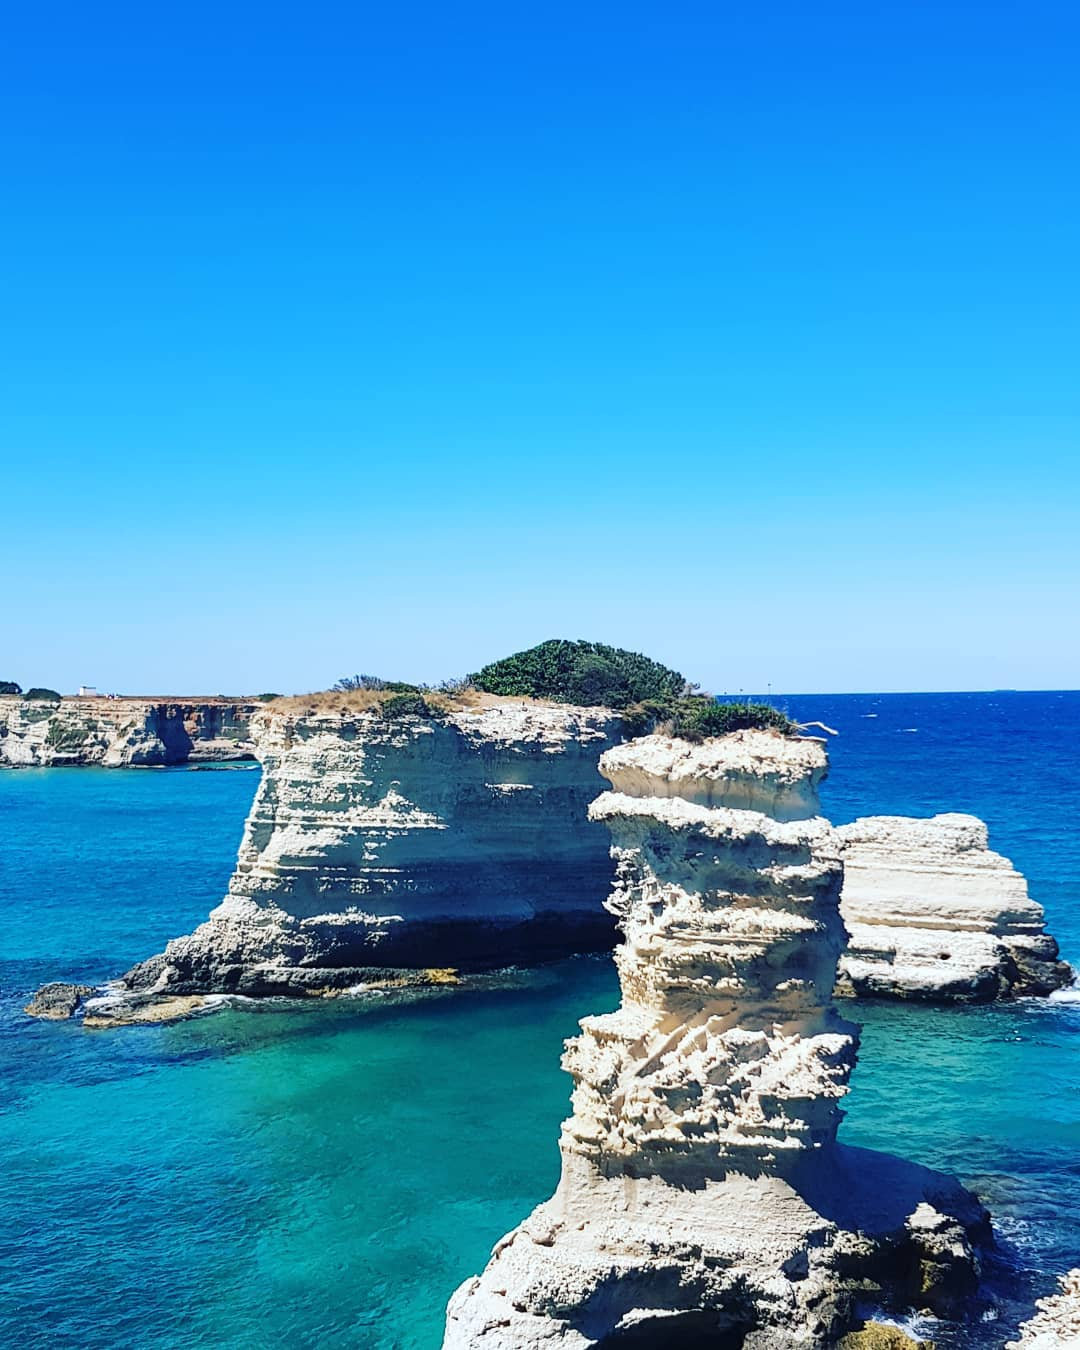 South of Lecce🇮🇹 you have the opportunity to marvel at beautiful rock⛰ formations in the Adriatic Sea🏝#Lecce #Adraticsea #beautiful #italy #italien #apulien